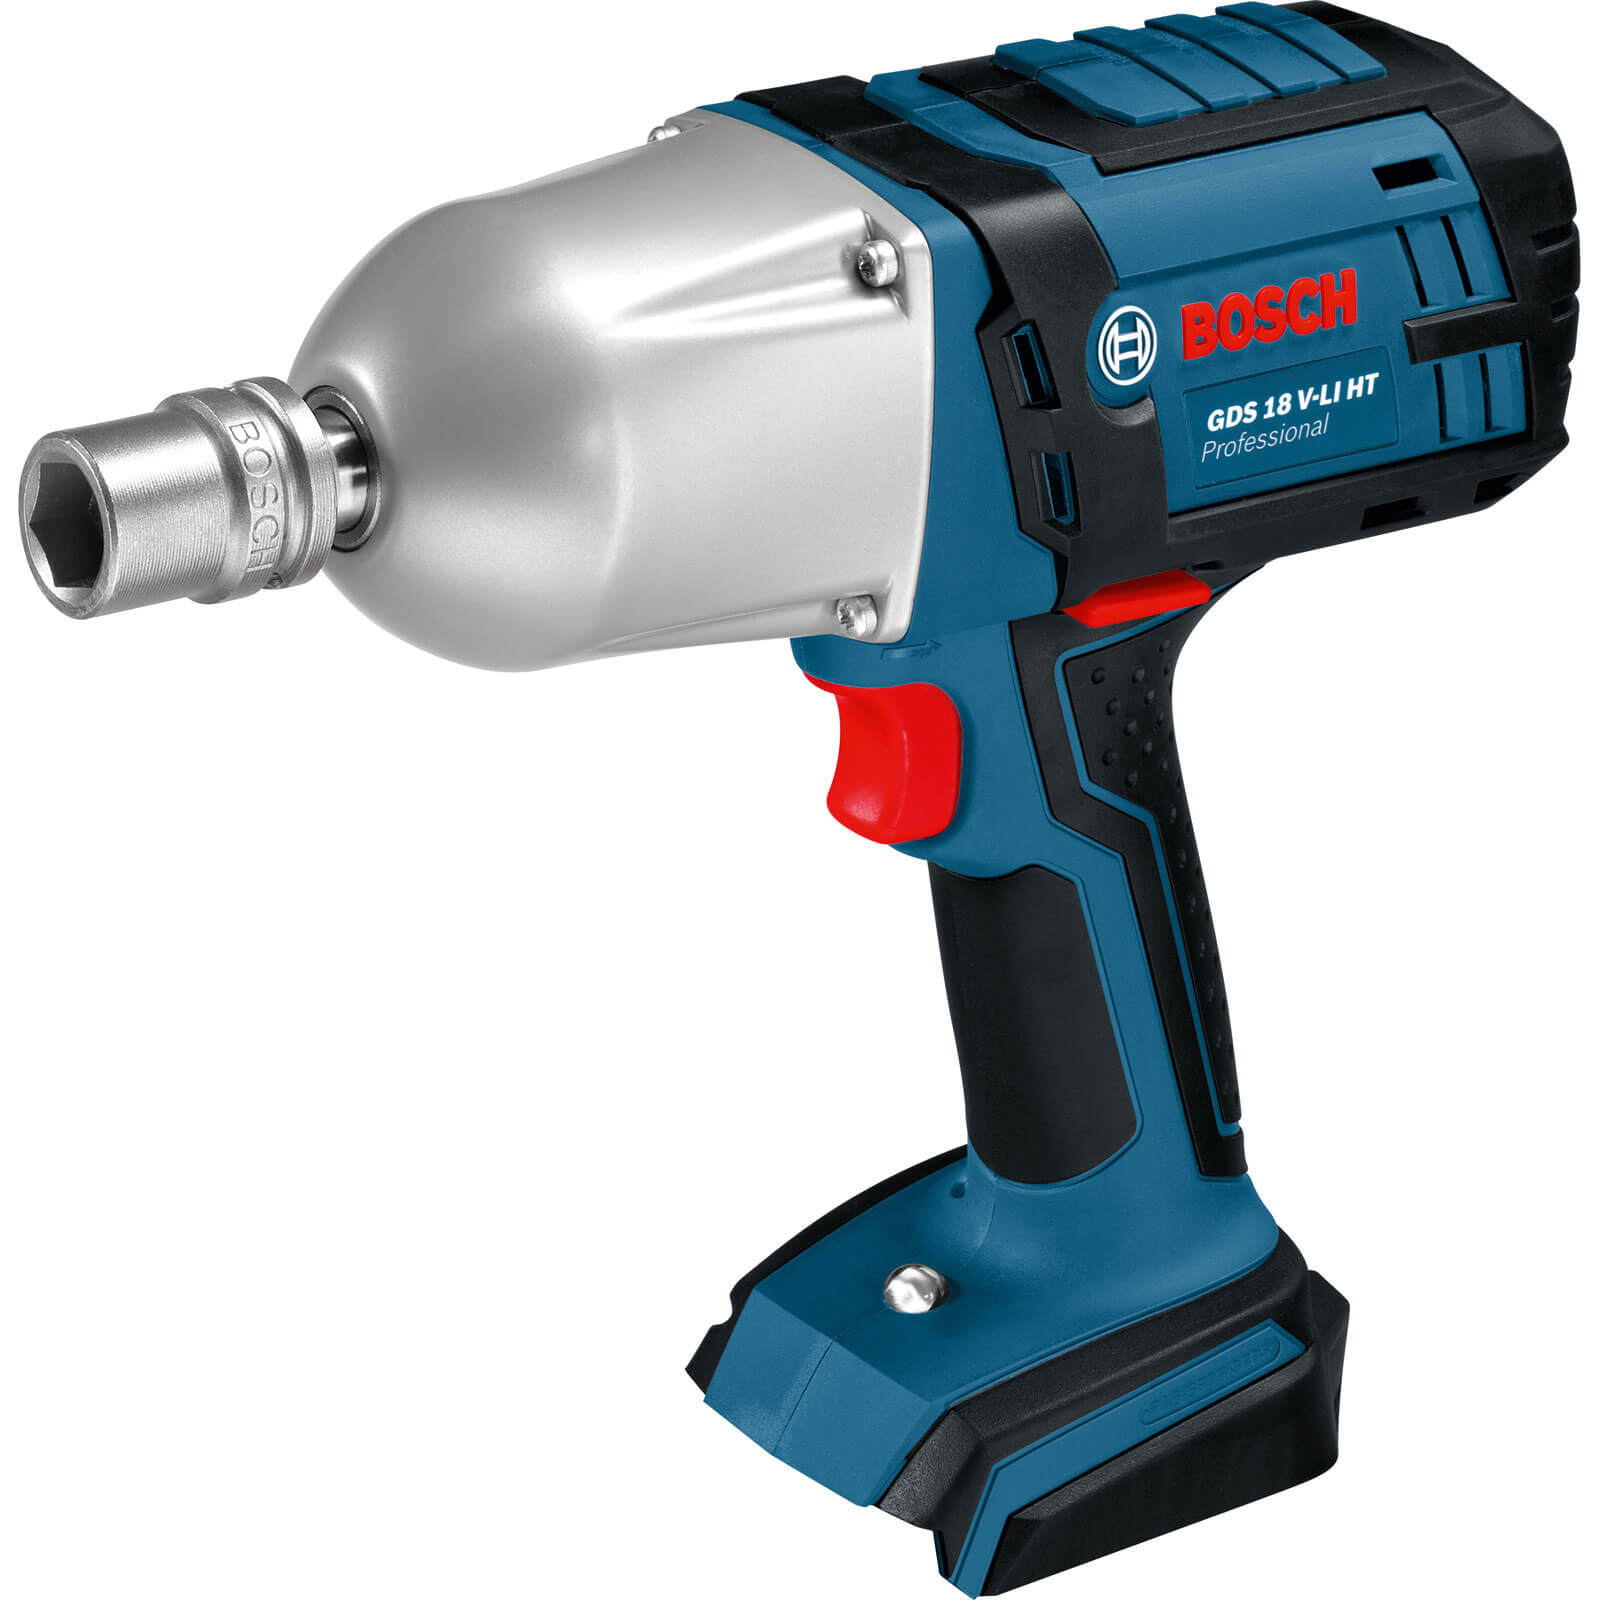 Bosch GDS 18 VLI HT 18v Cordless 12 Drive Impact Wrench No Batteries No Charger No Case